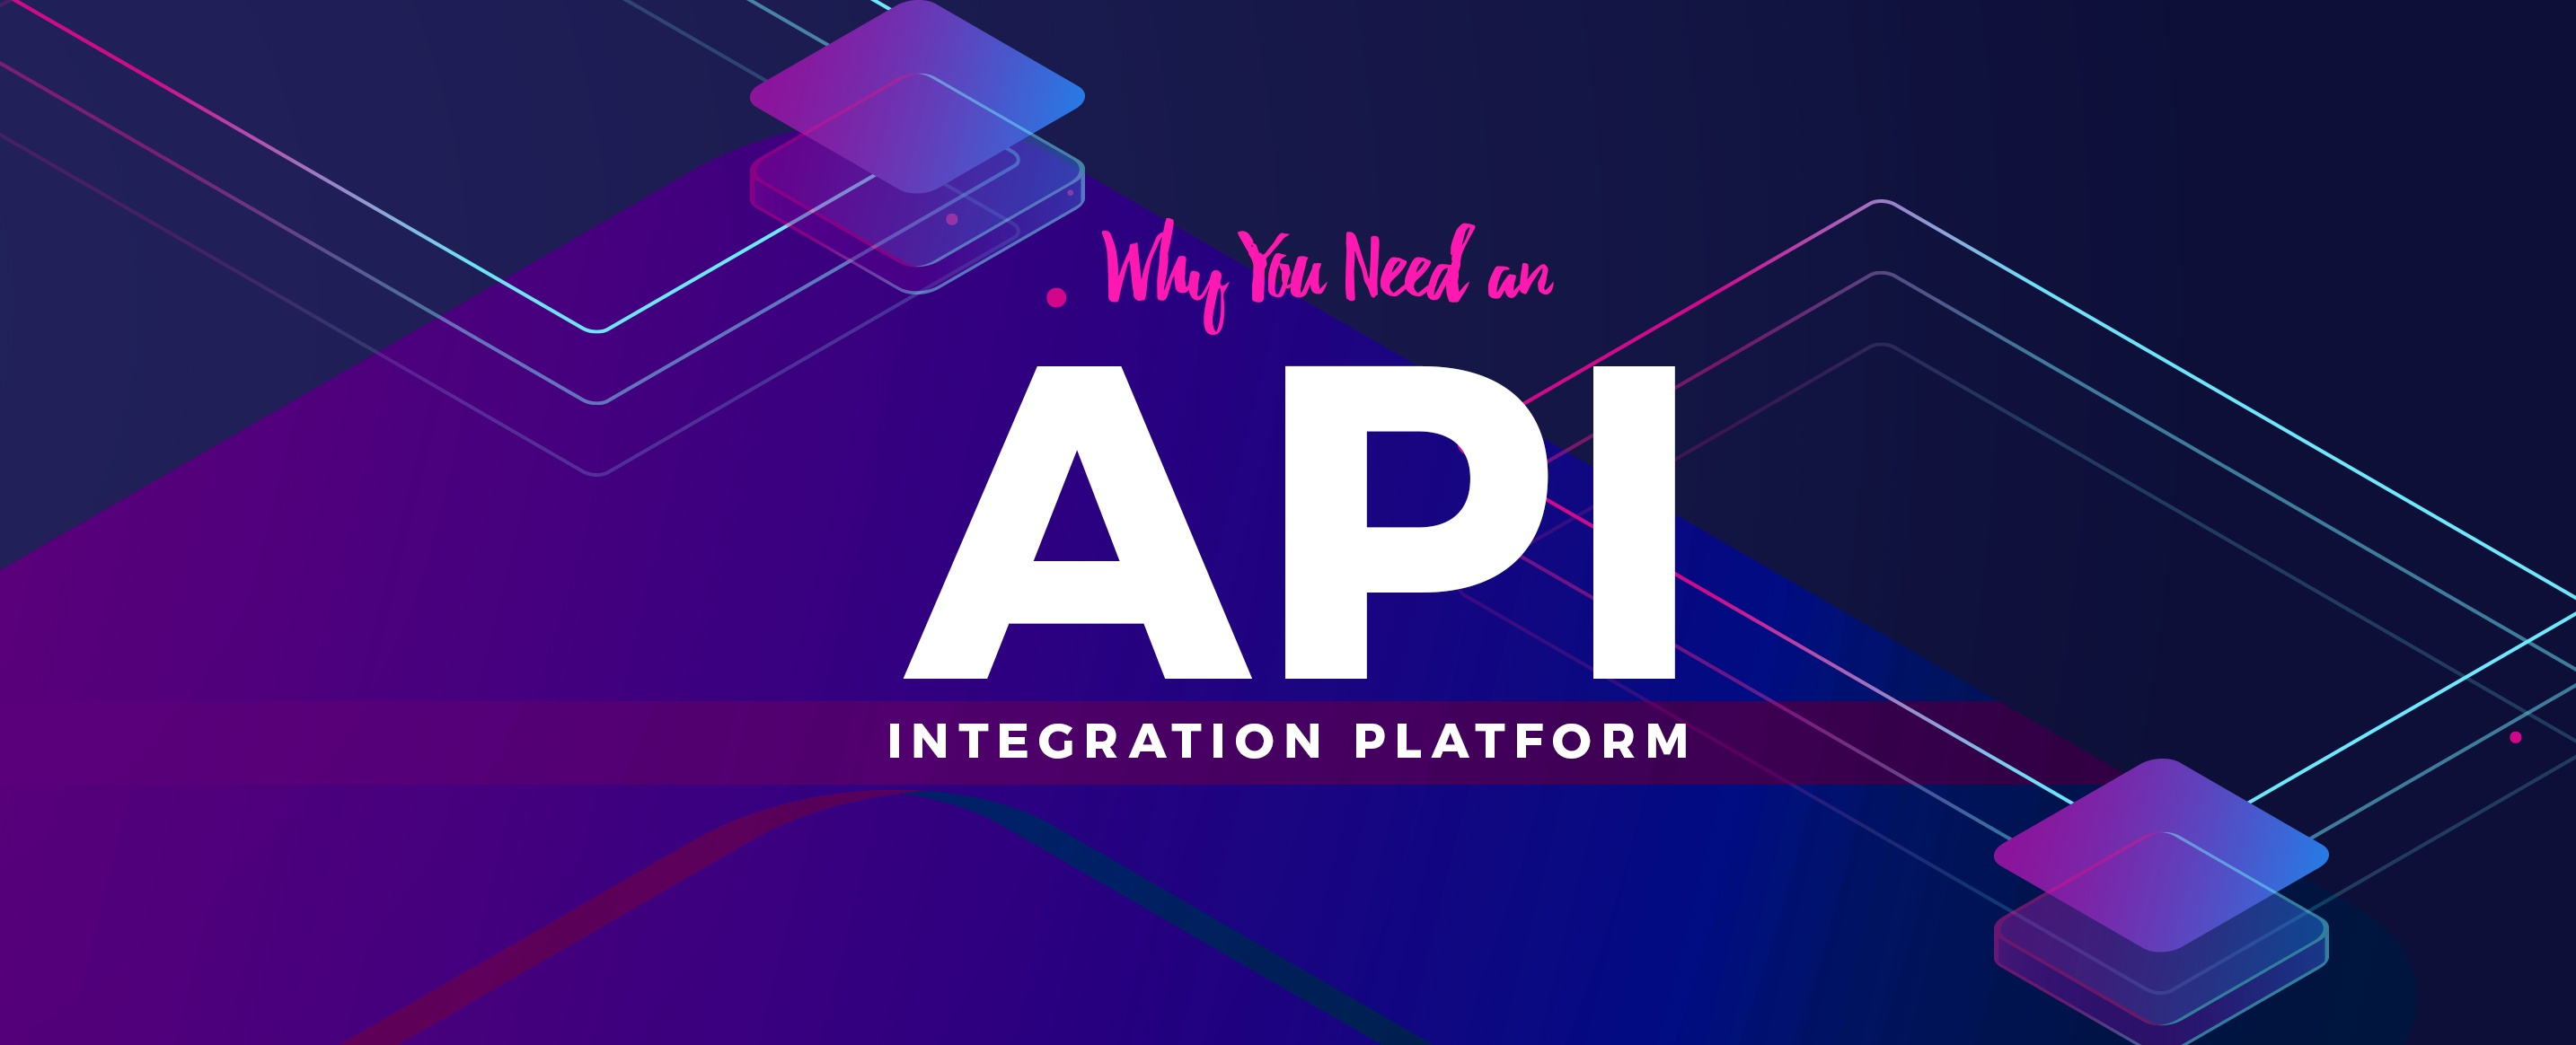 Why-You-Need-an-API-Integration-Platform